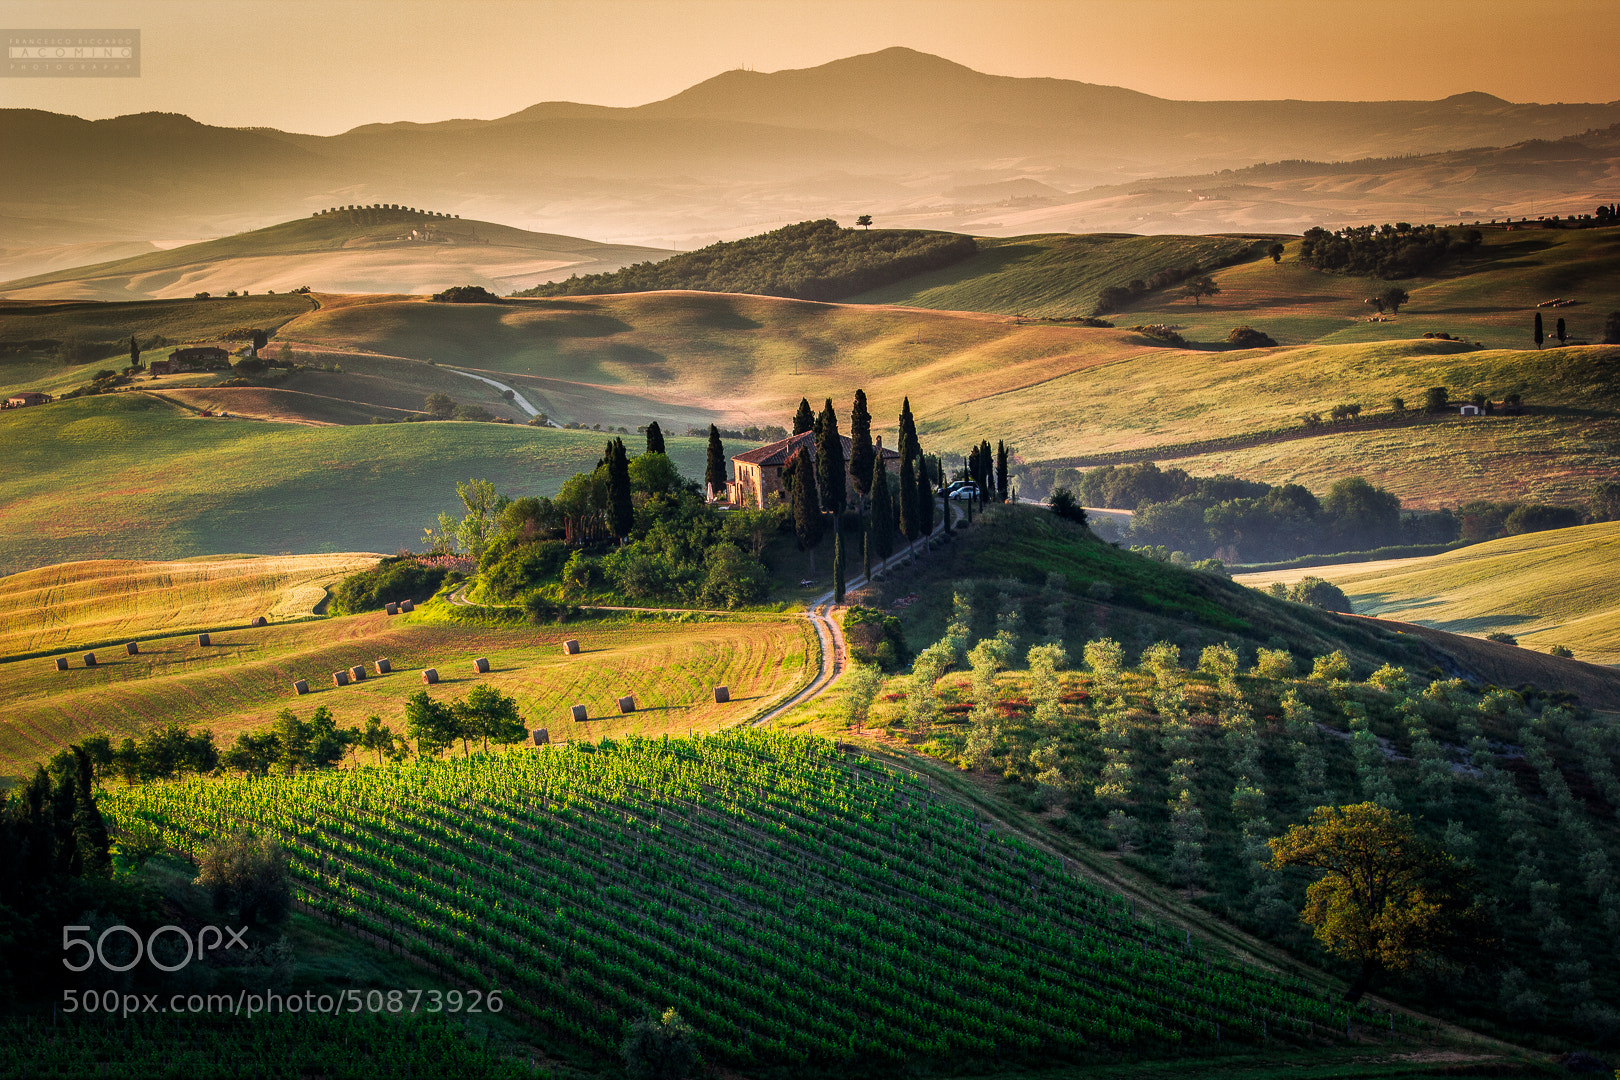 Photograph Perfect Day by Francesco Riccardo Iacomino on 500px